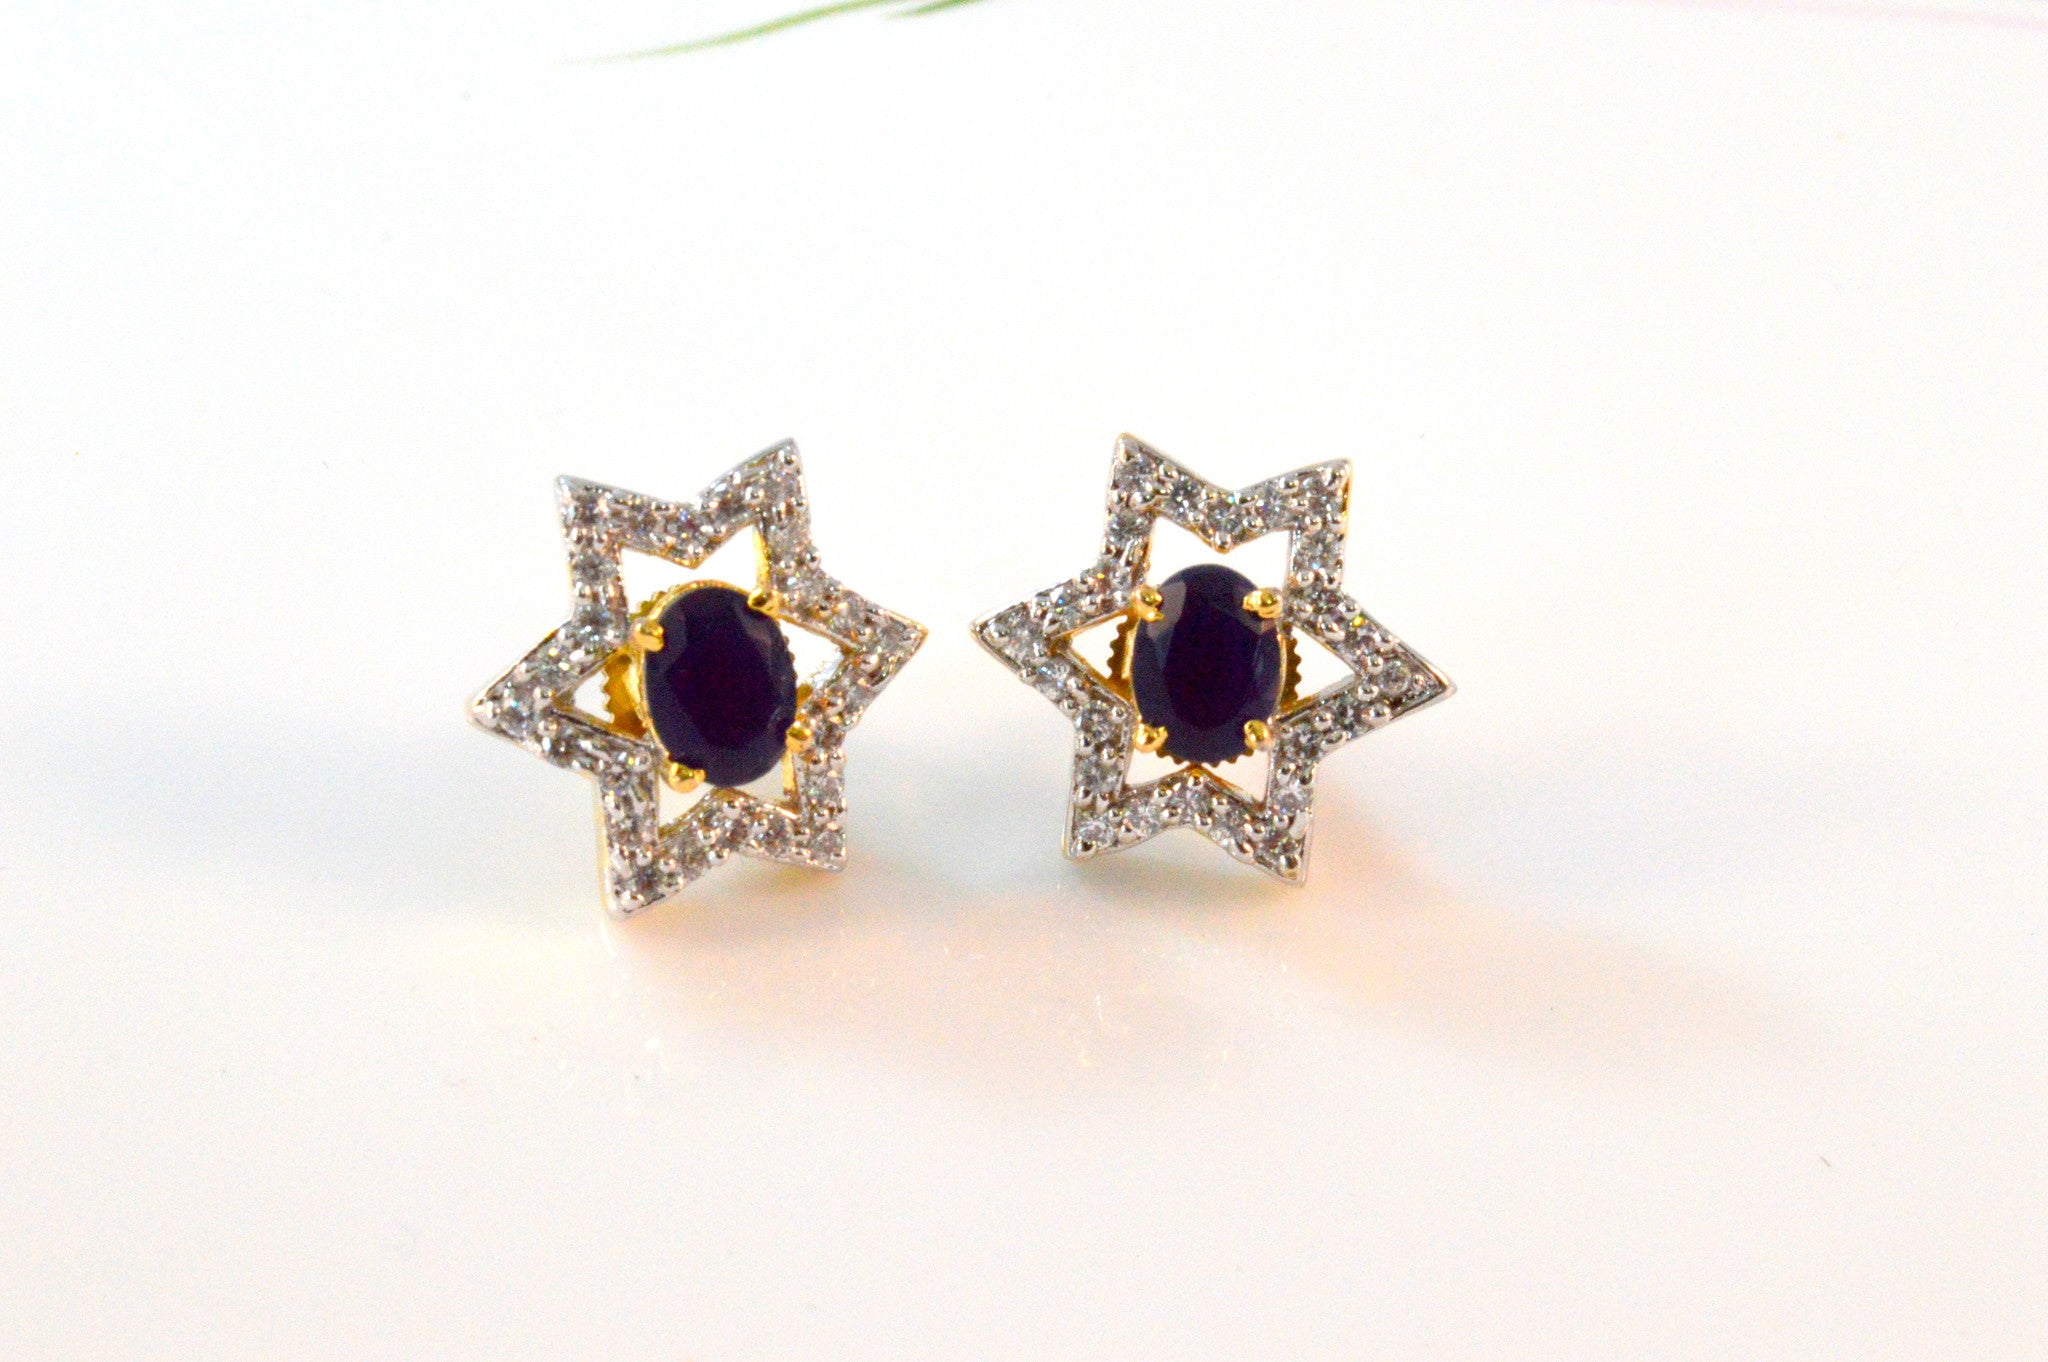 Dinky American Diamond Earrings in Blue and White Colour - DI483